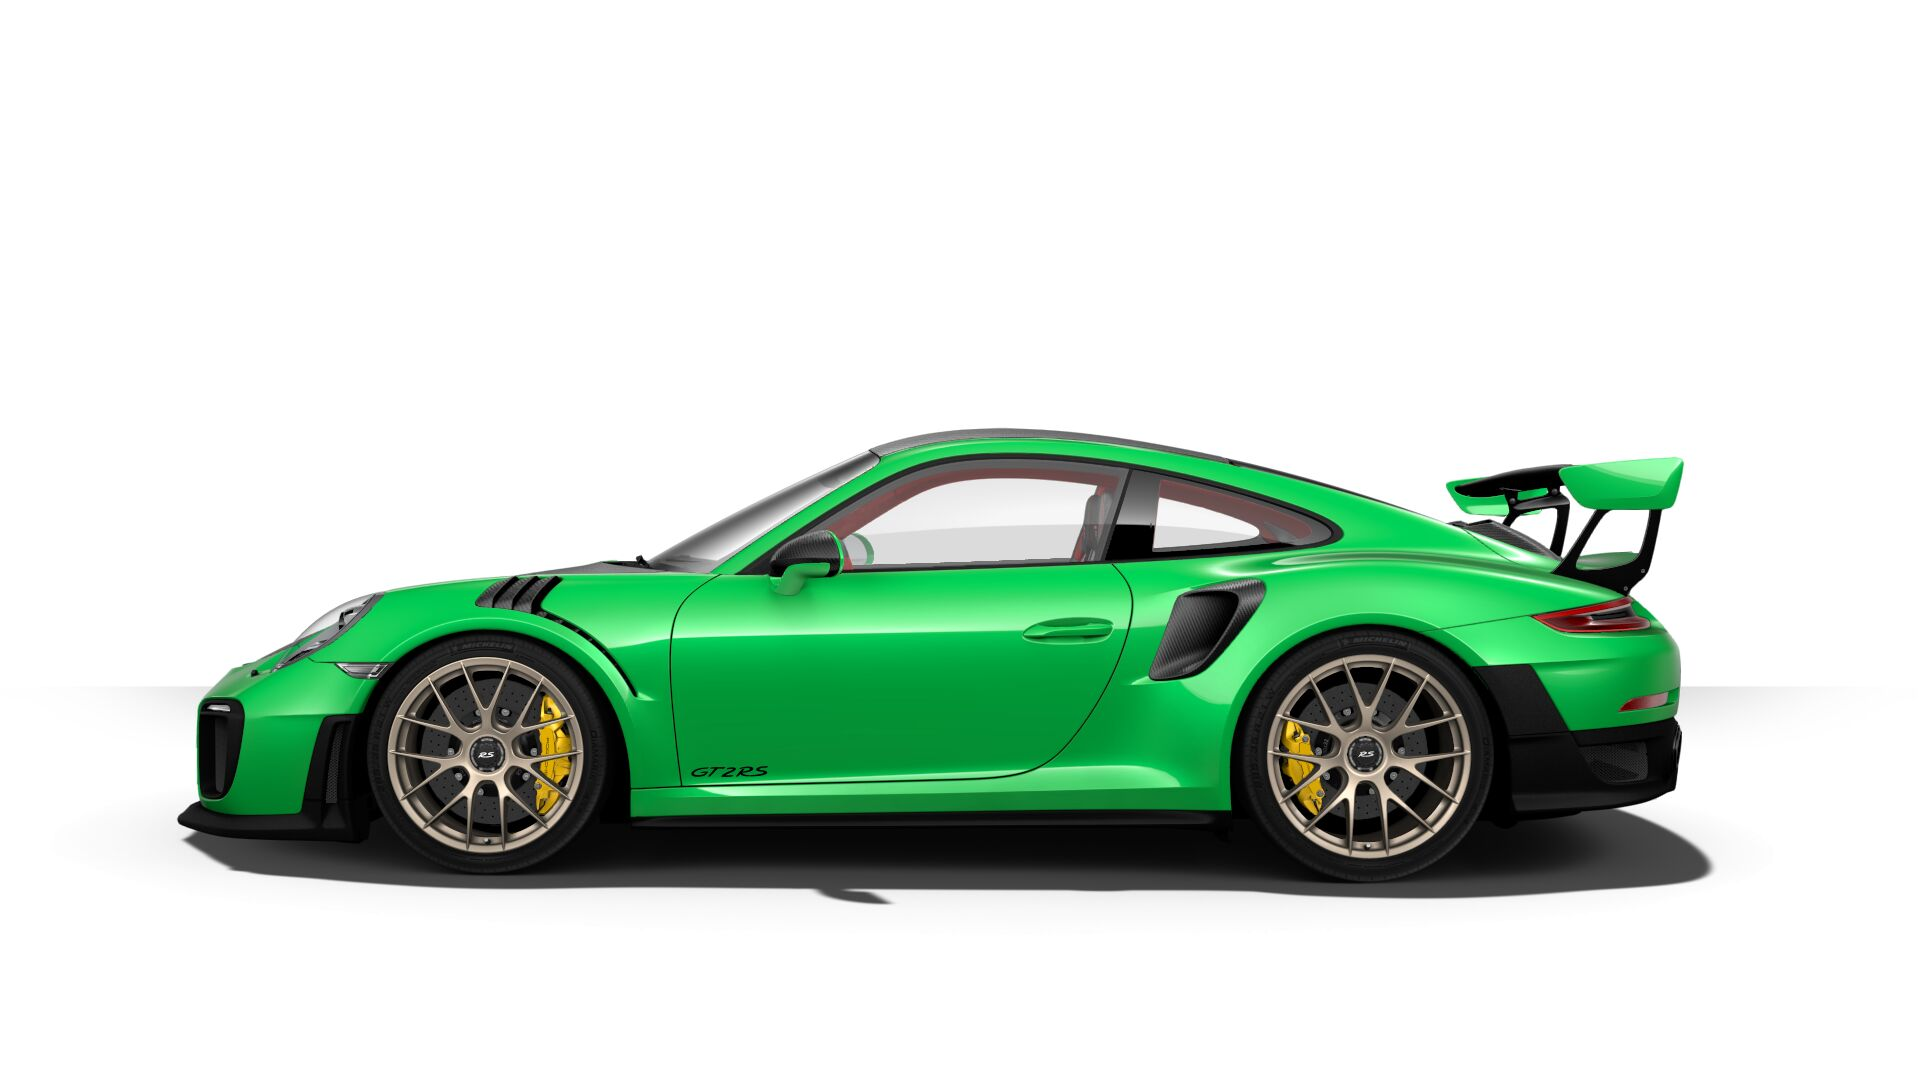 paint-to-sample-2018-porsche-911-gt2-rs-hits-configurator-at-12830_2 Extraordinary Porsche 911 Gt2 Rs Used Cars Trend